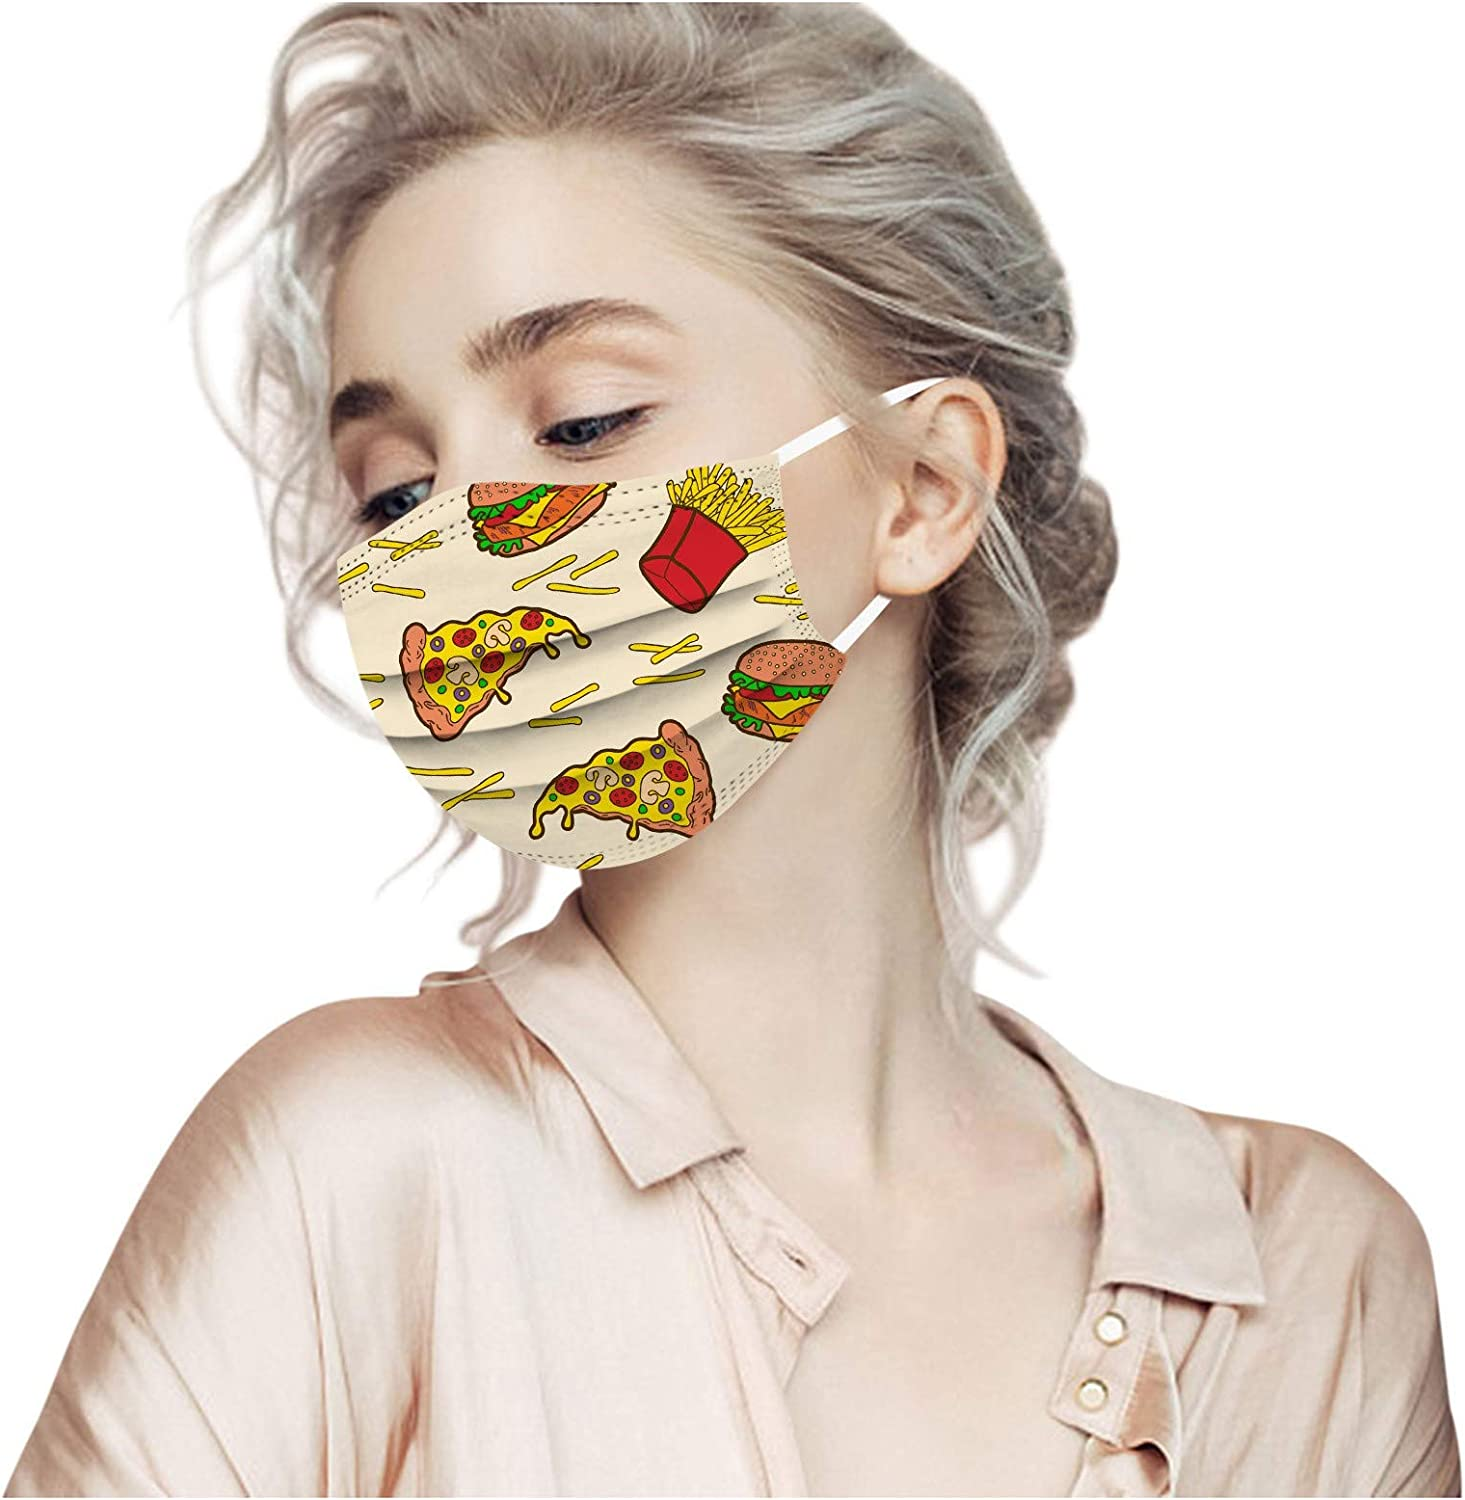 2021 Happy New Year Disposable Face Bandana for Adults,3-ply Non-Woven Fabric High Filtration and Ventilation Security